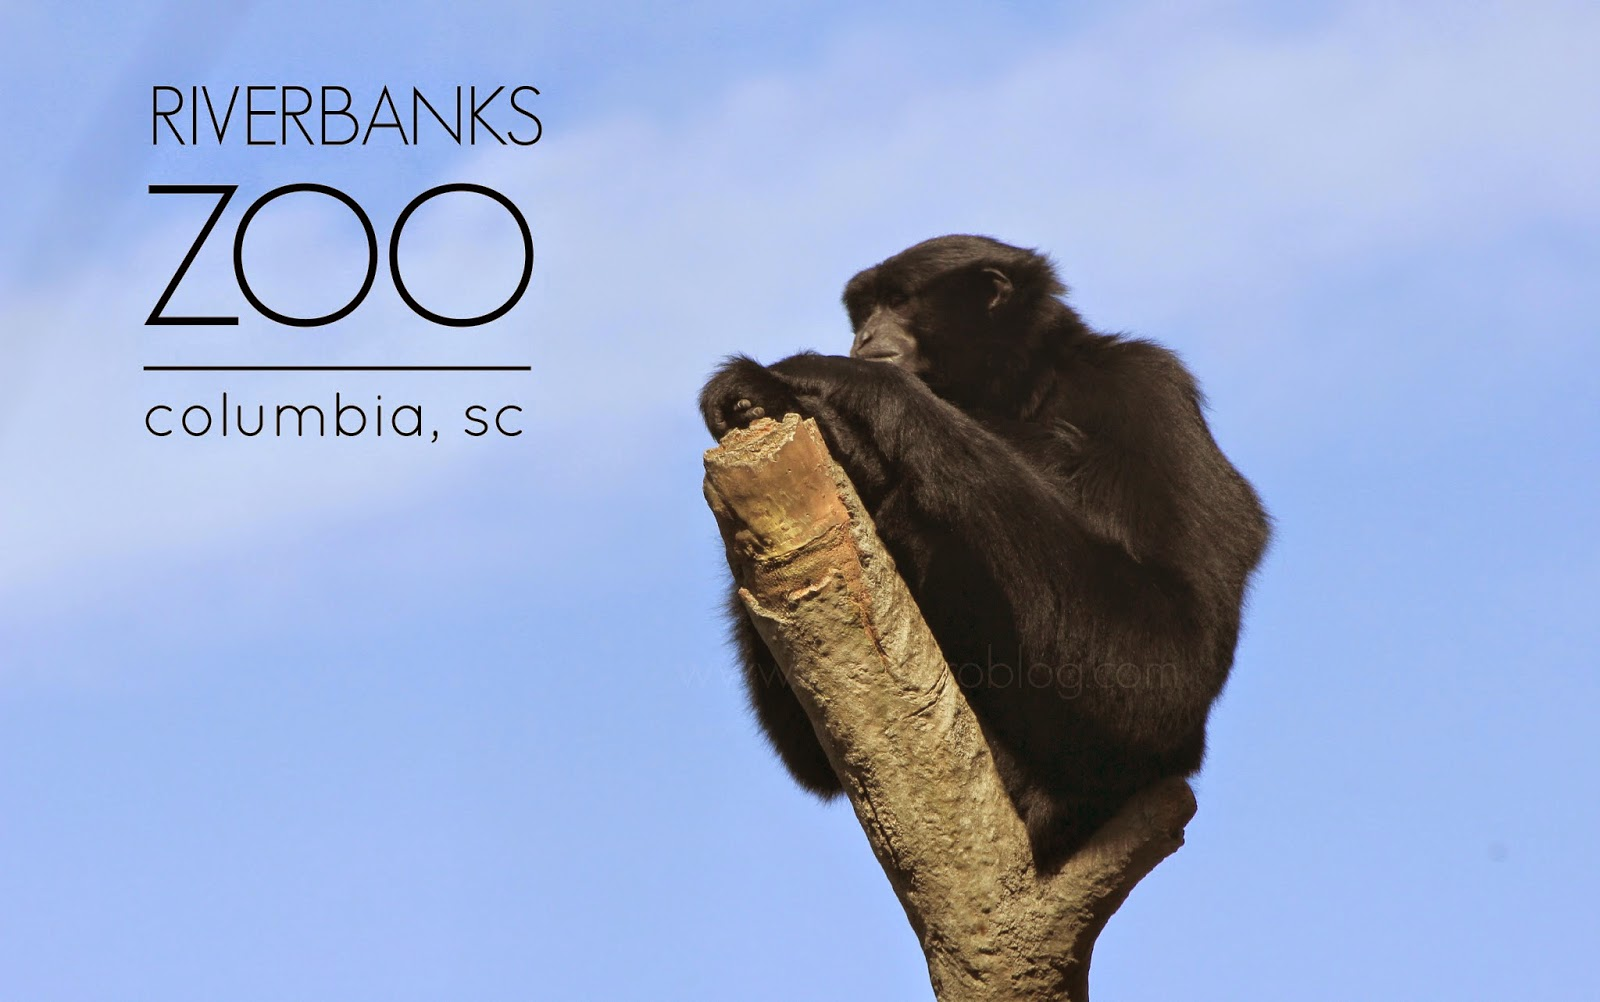 riverbanks zoo, columbia sc